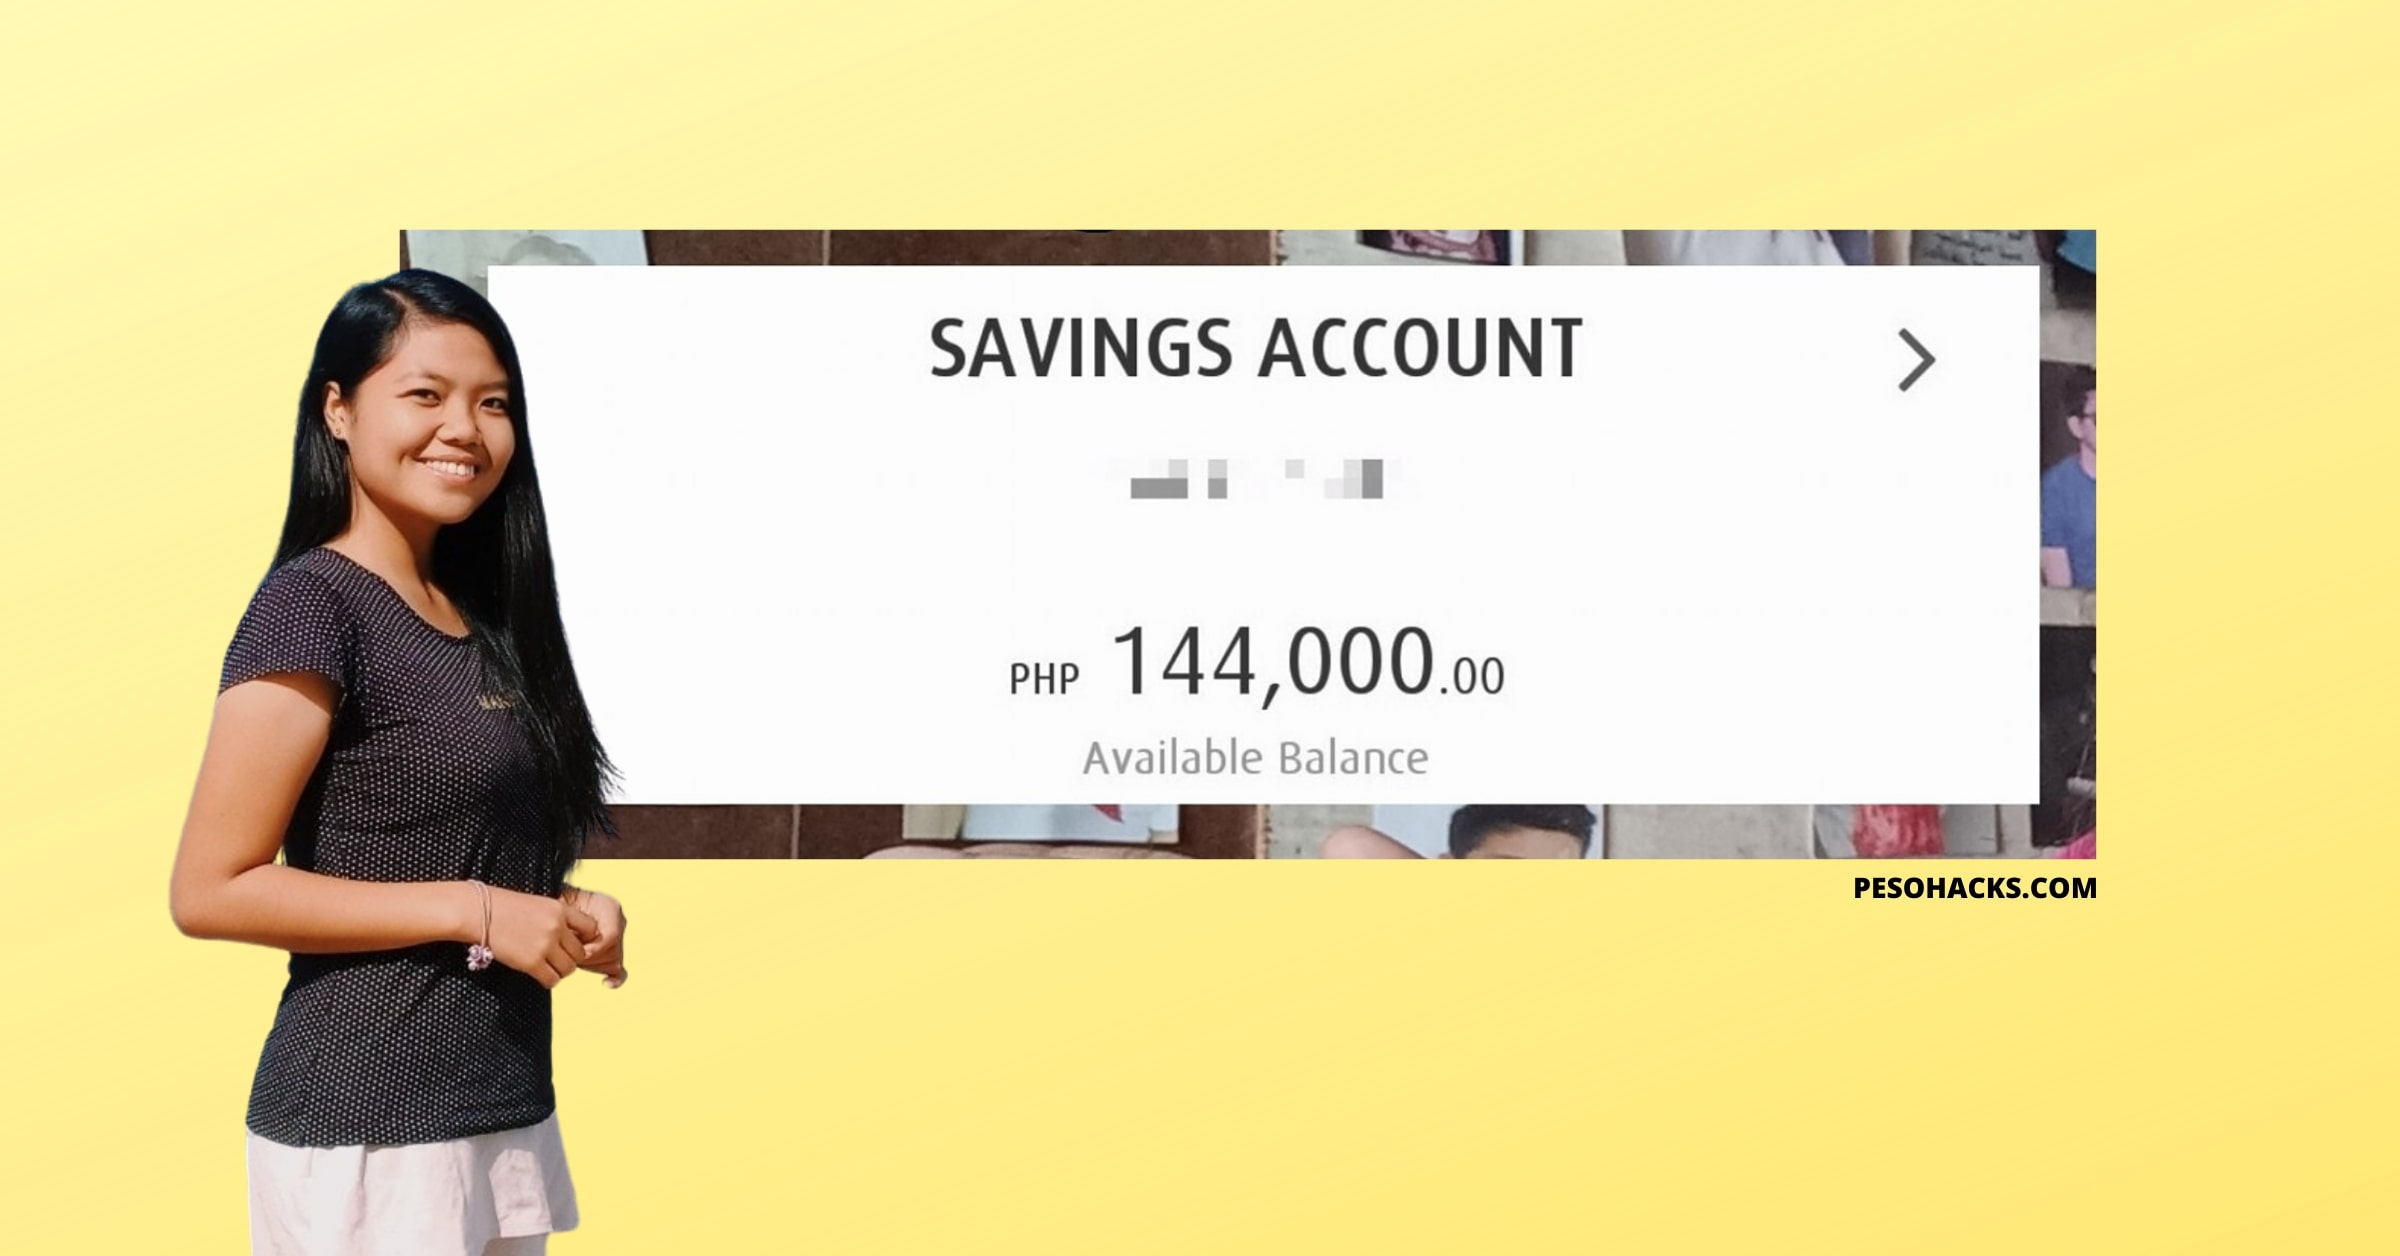 How a 20-Year Old Pinay Saved P100k+ While Studying!